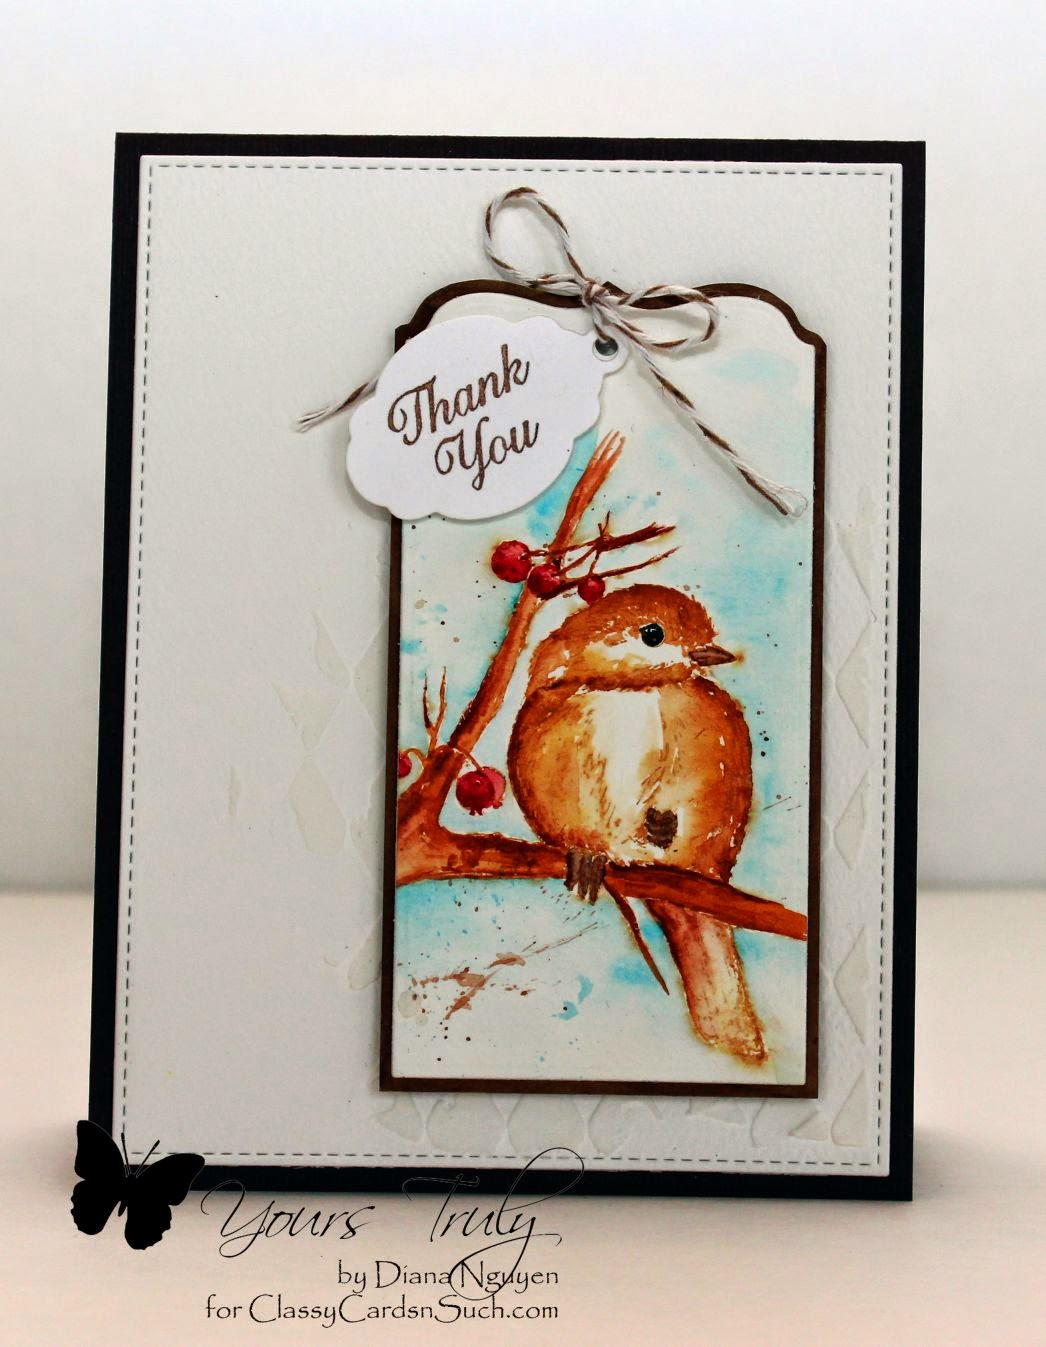 Diana Nguyen, stencil, Tim Holtz, Our Daily Bread Designs, Chickadee, Classy Cards n Such